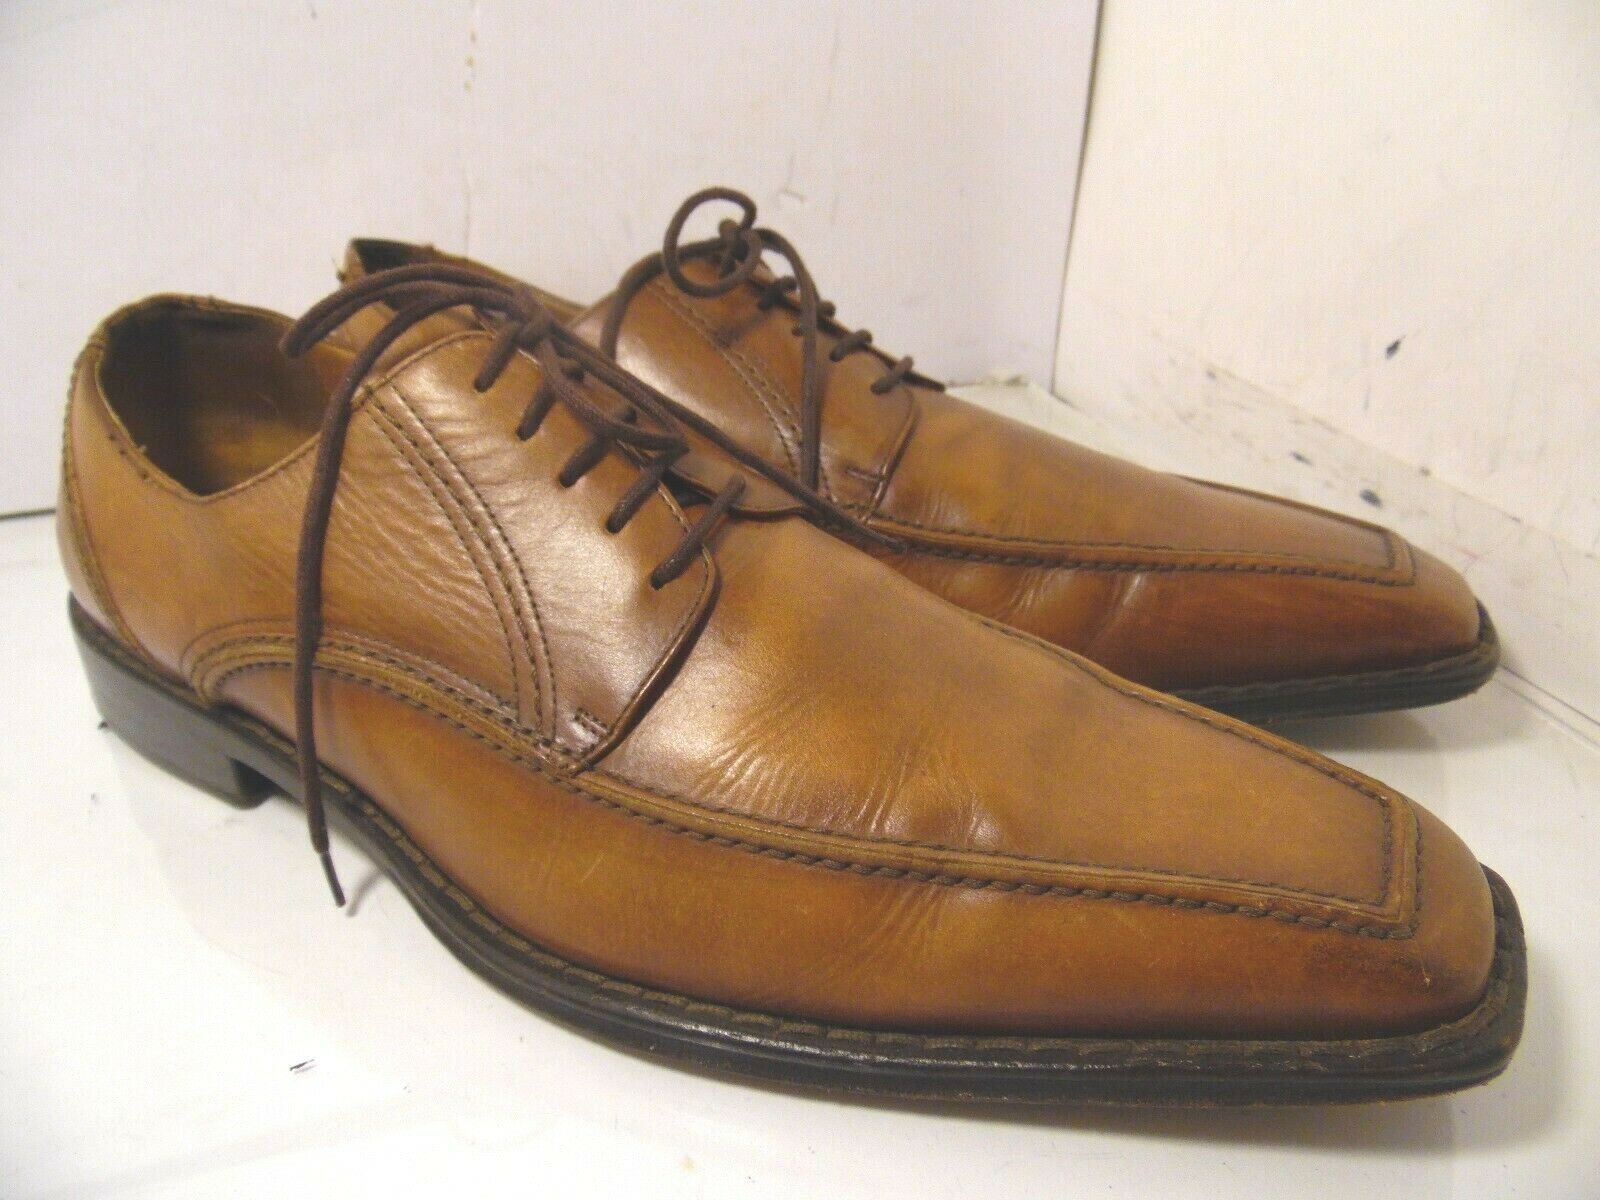 CALROLERIA GOSEANA LAVORATE A MANO Brown Leather Oxfords shoes Mens SZ 12